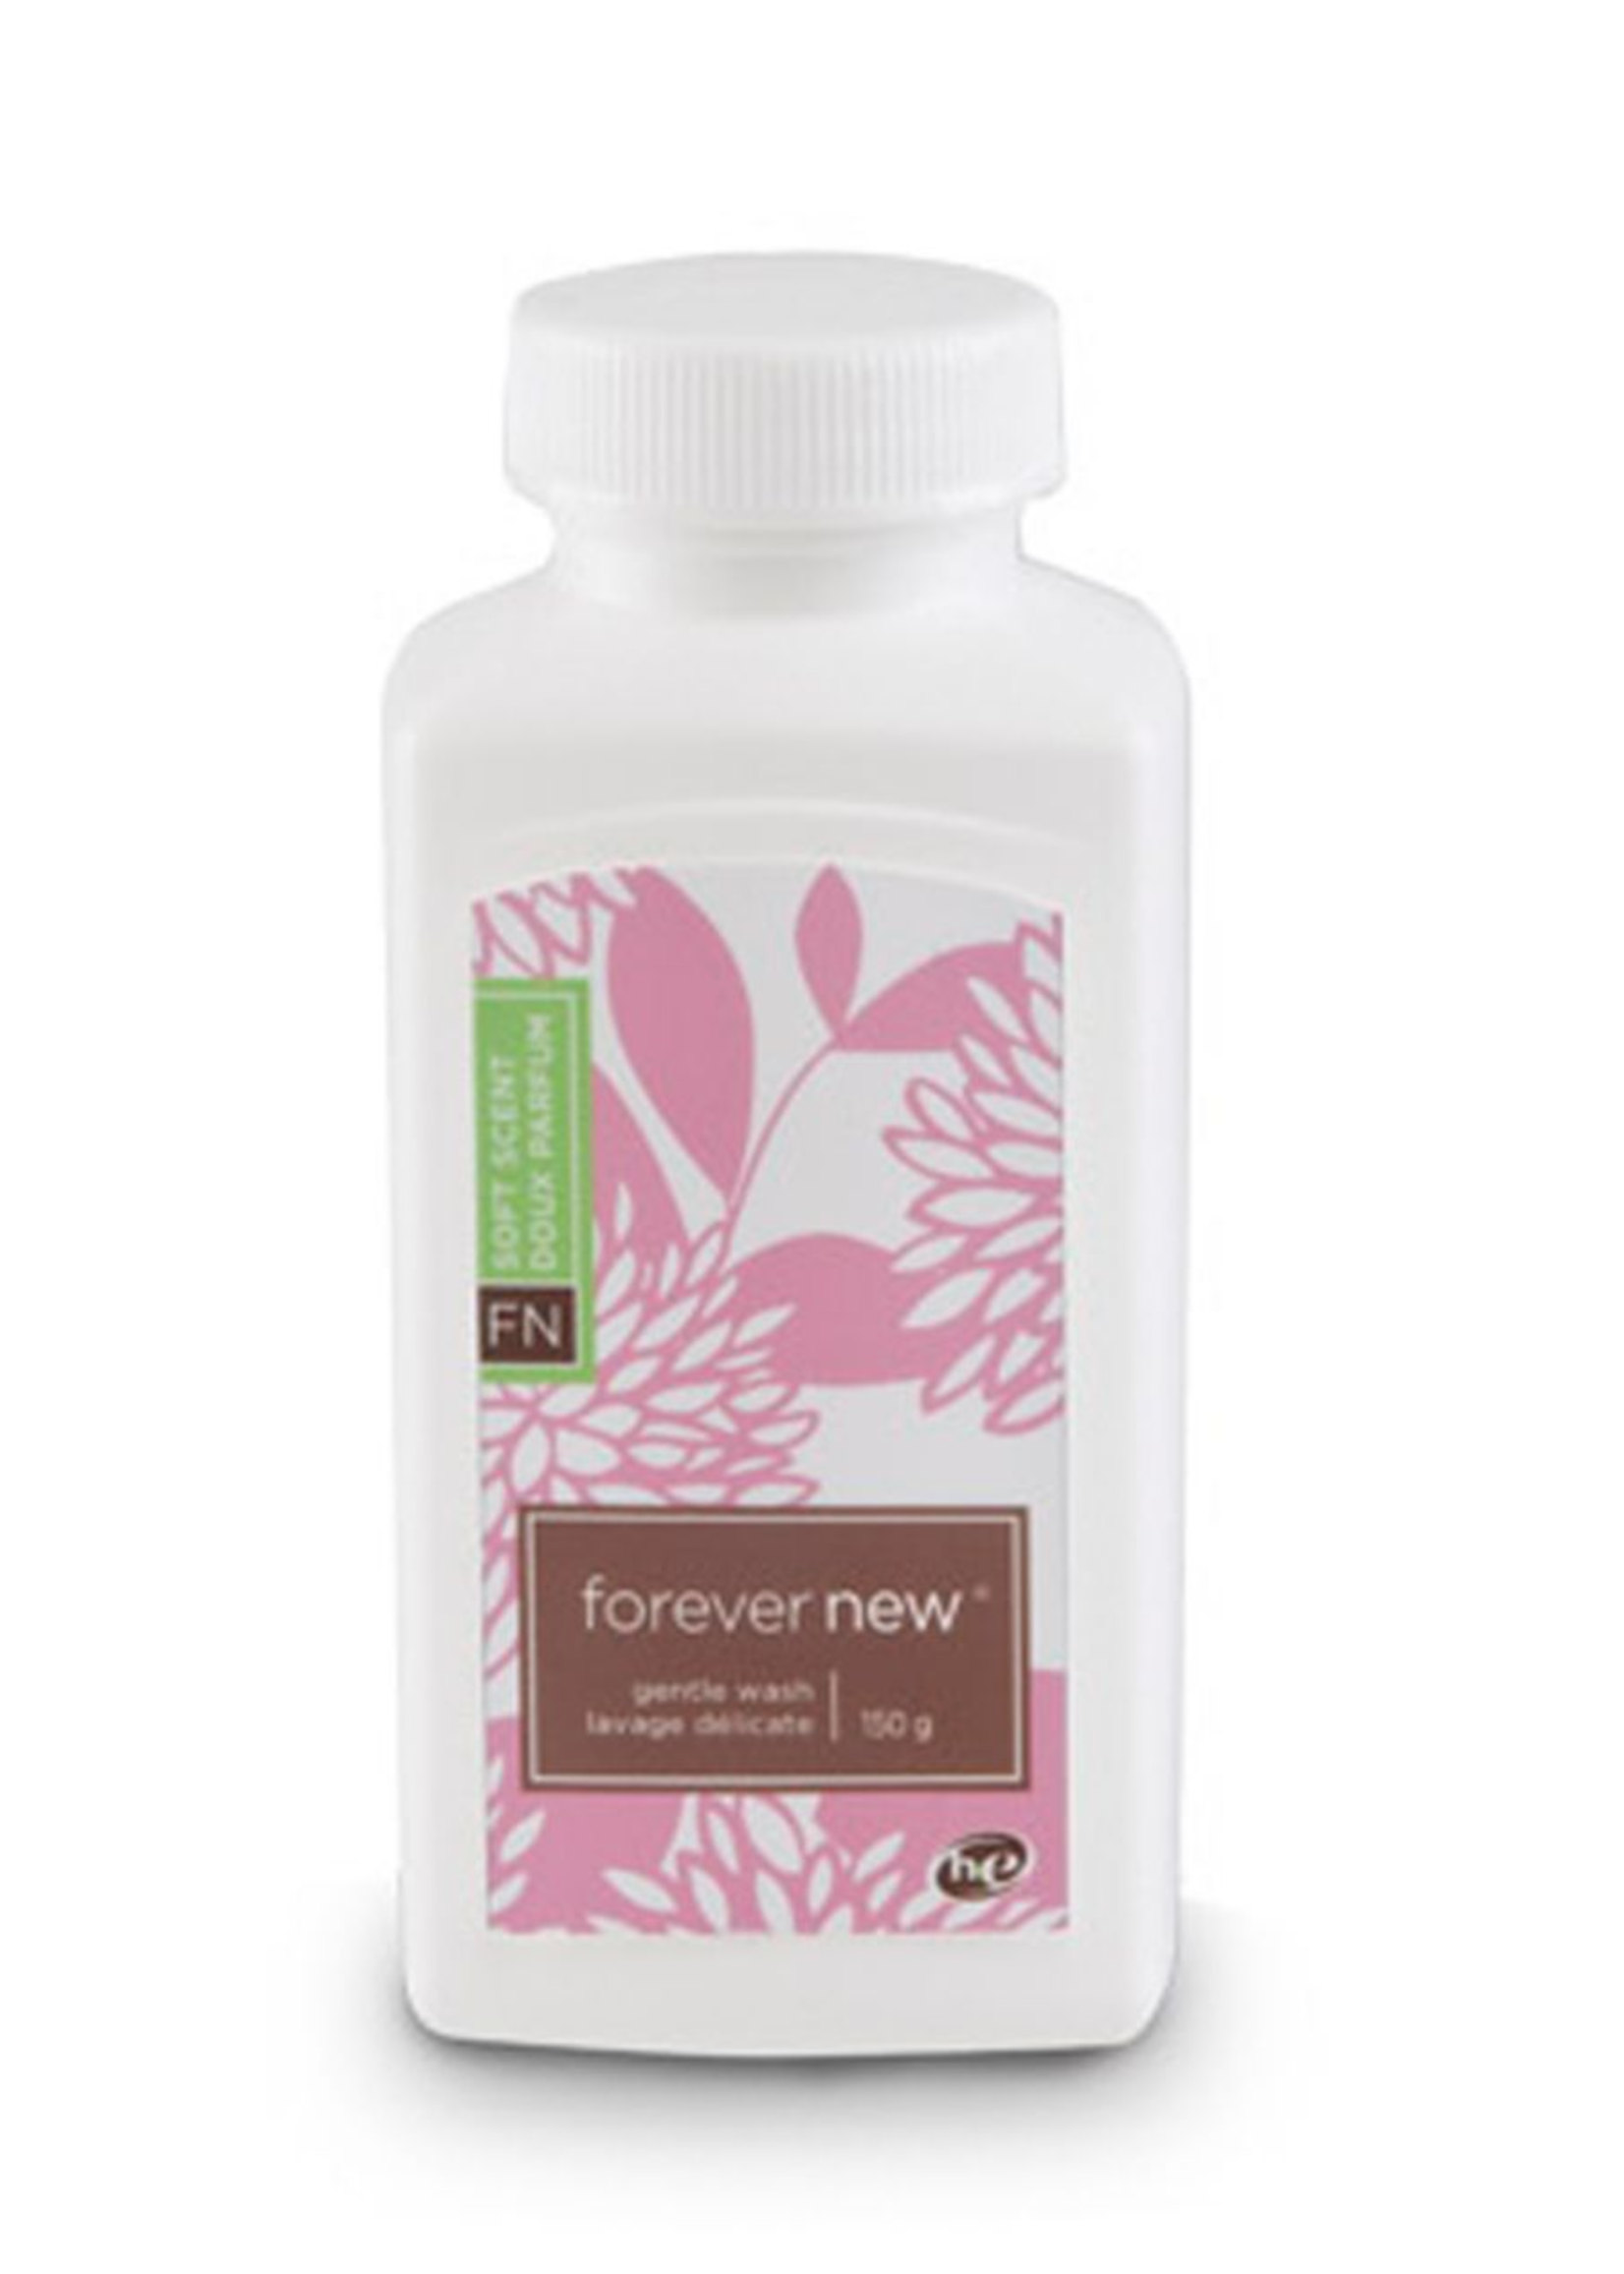 Forever New Powder Detergent Small 150g